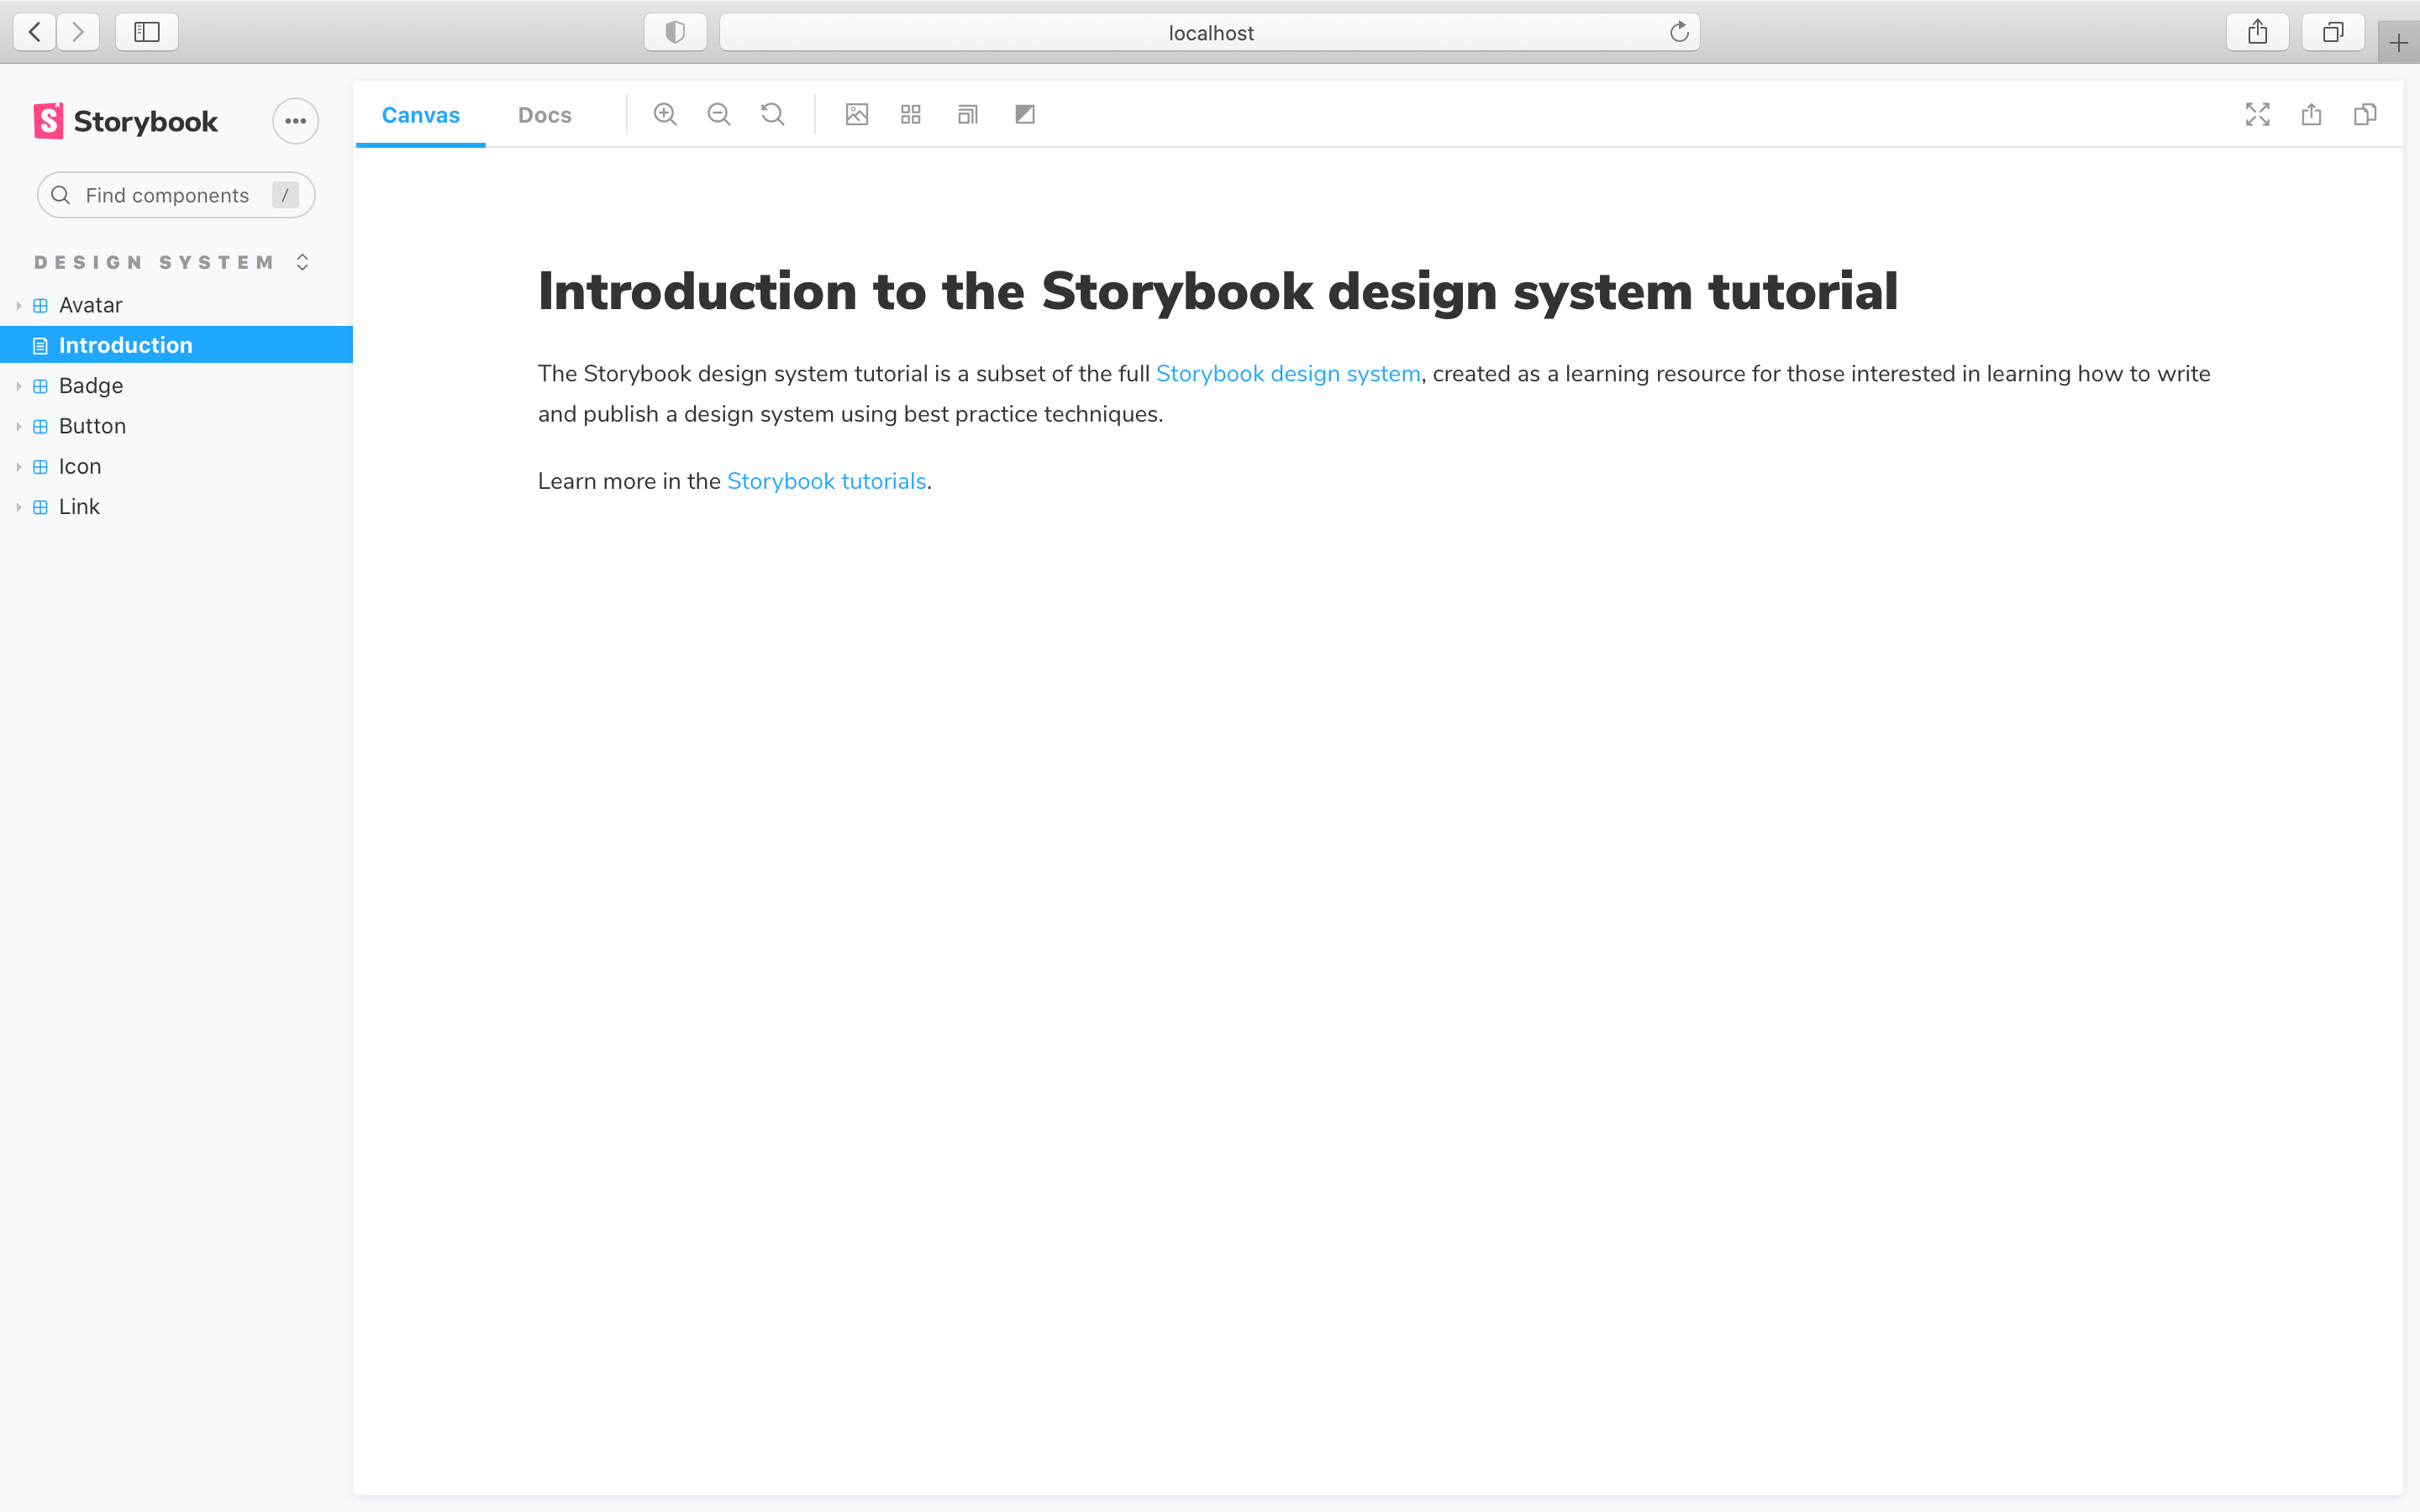 Storybook docs with introduction page, unsorted